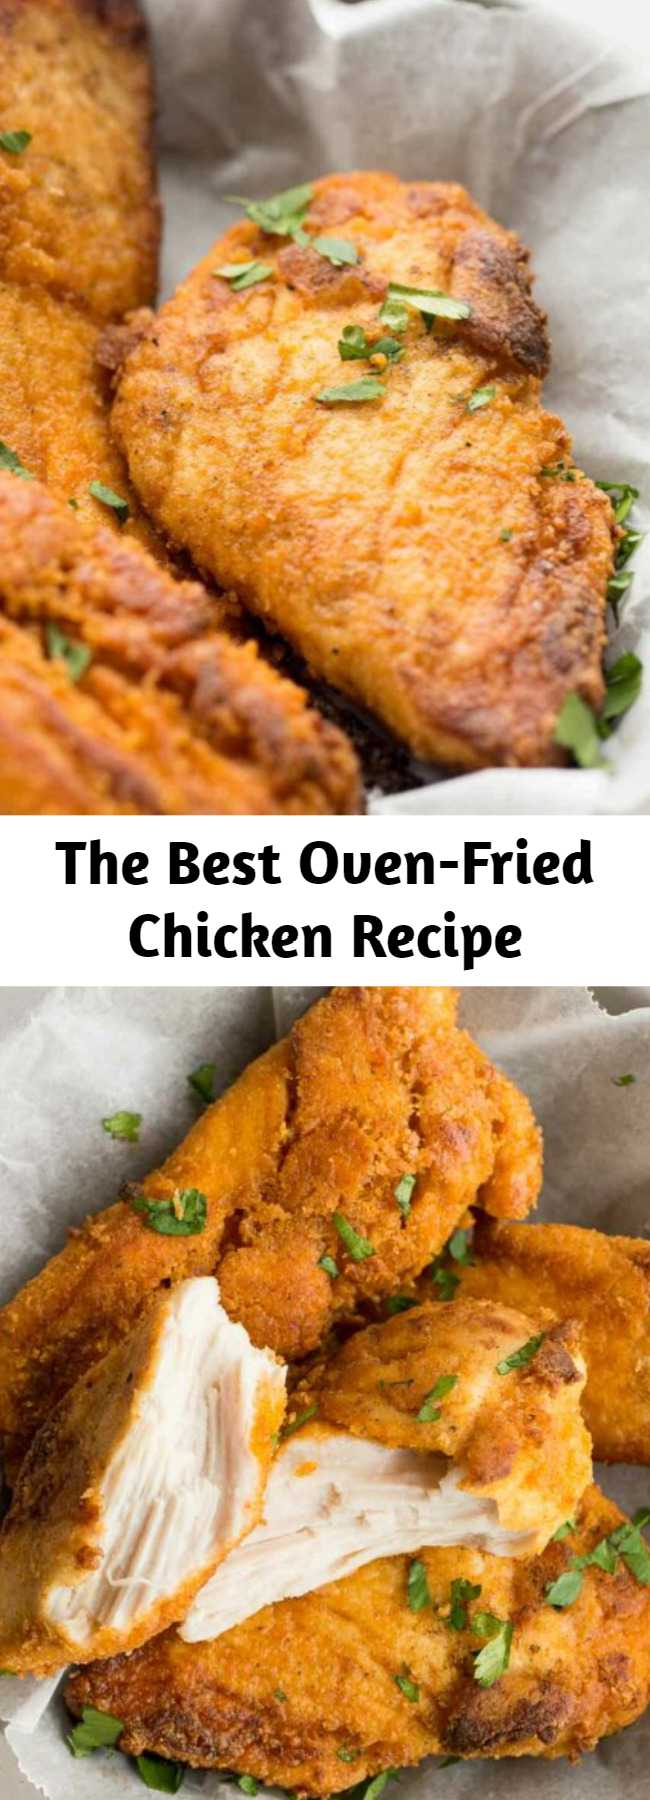 The Best Oven-Fried Chicken Recipe - This is the BEST Oven Fried Chicken recipe! It comes crispy right out of the oven, is much lower in fat and made with lean chicken breast. It takes just like KFC but it's baked instead of fried! #chicken #healthy #healthydiet #healthyrecipe #chickenrecipe #recipe #cooking #dinner